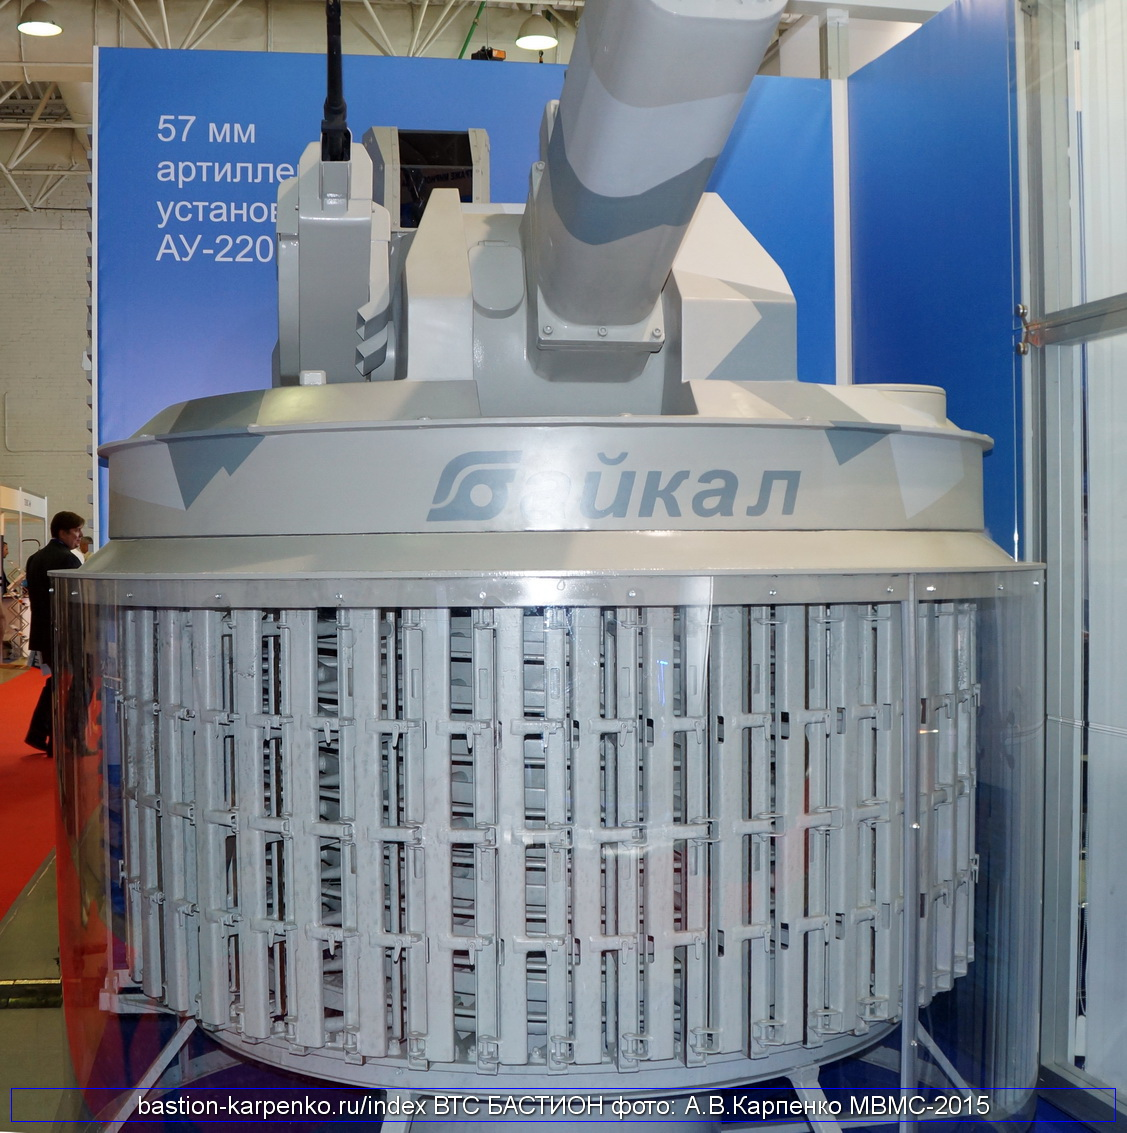 Russia Arms Expo 2015: Official Thread - Page 3 AU220M_MVMS-2015_08